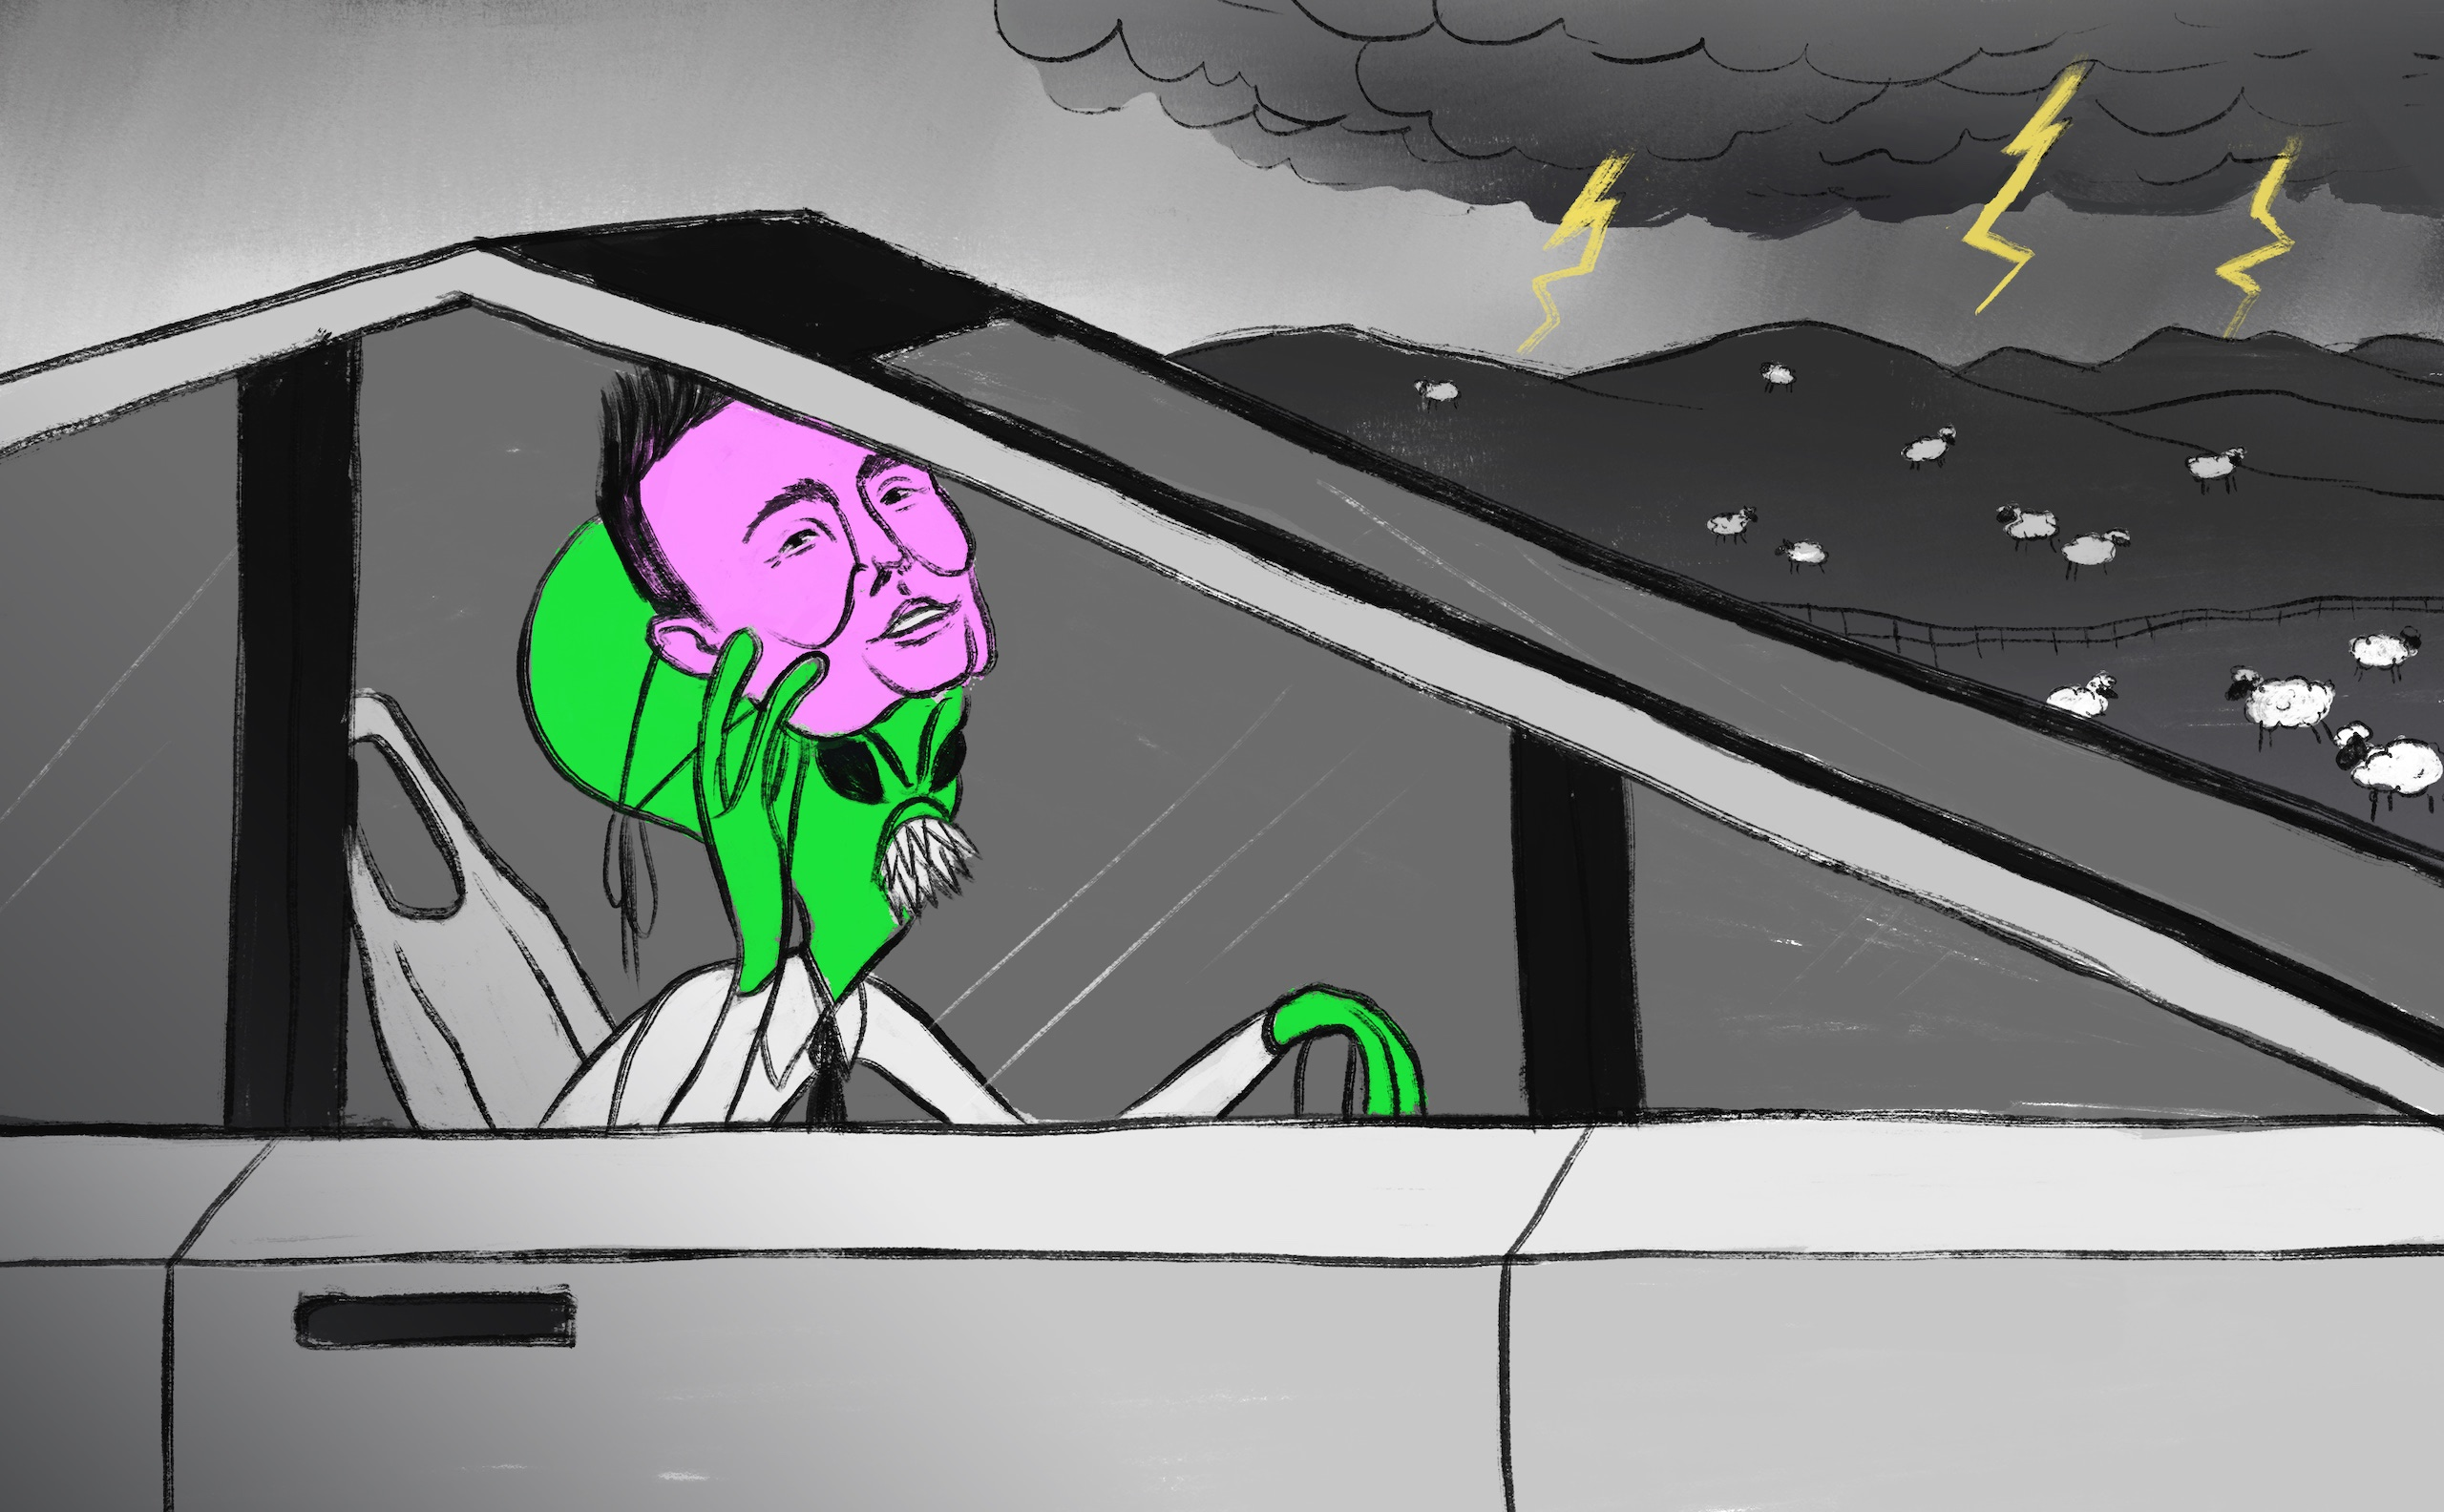 Illustration: a green alien wearing a purple Elon Musk mask is driving a Tesla cybertruck, in the background are sheep and a thunderstorm.